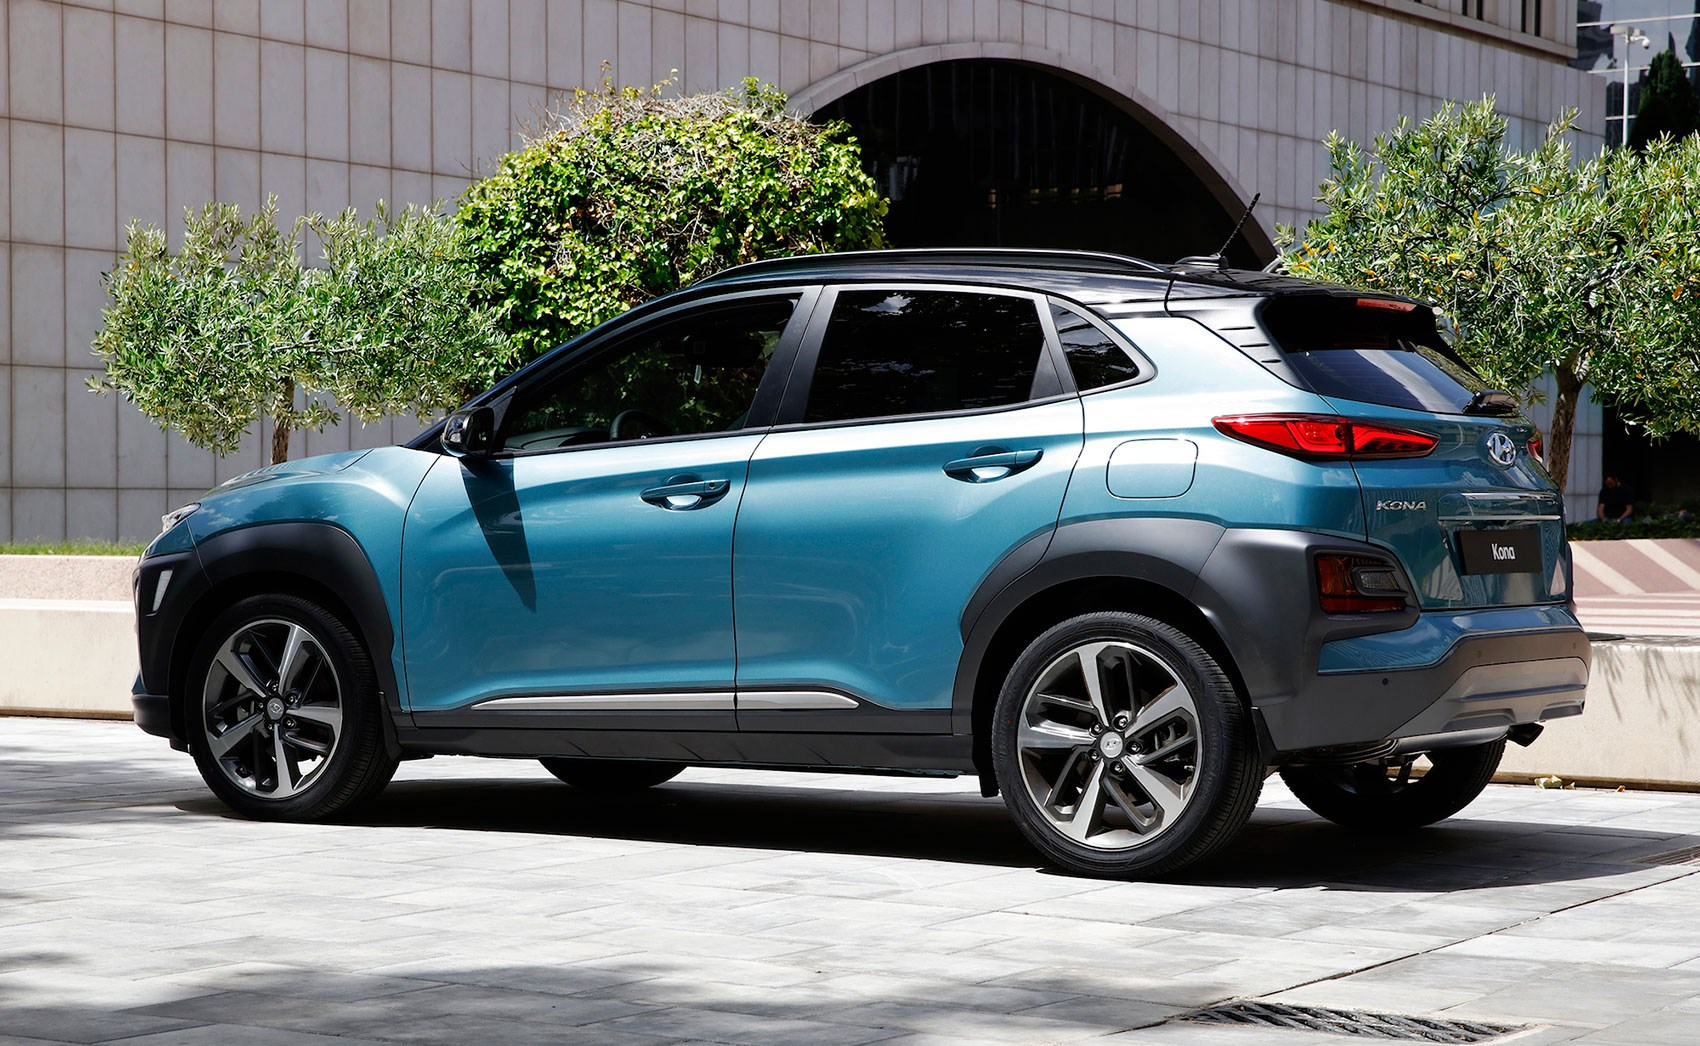 new hyundai kona suv specs pics and details on electric. Black Bedroom Furniture Sets. Home Design Ideas